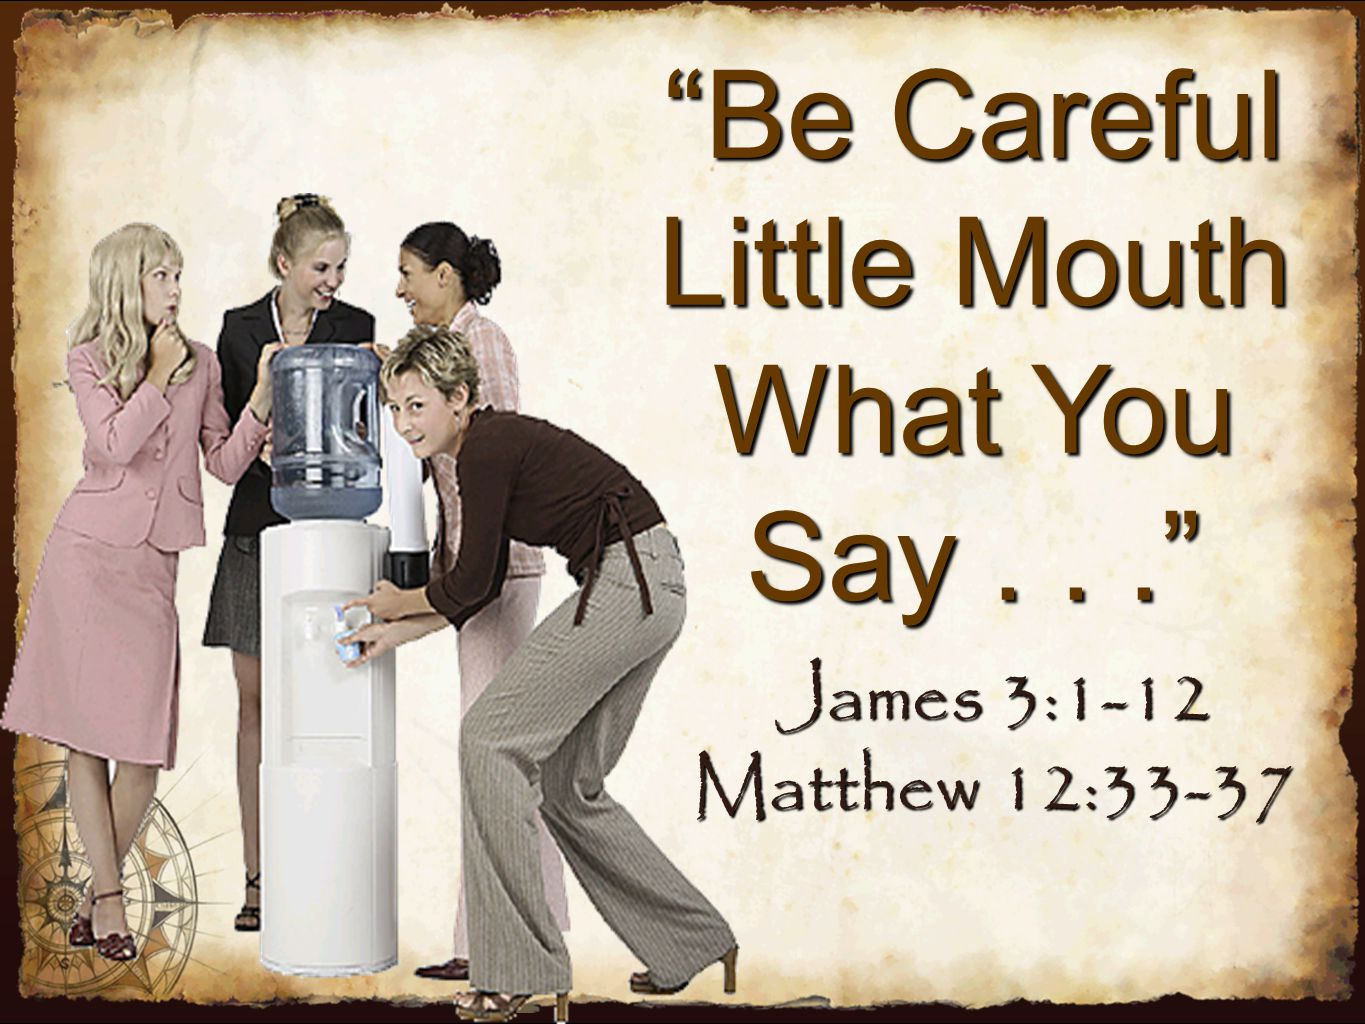 """""""Be Careful Little Mouth What You Say..."""" James 3:1-12 Matthew 12:33-37"""